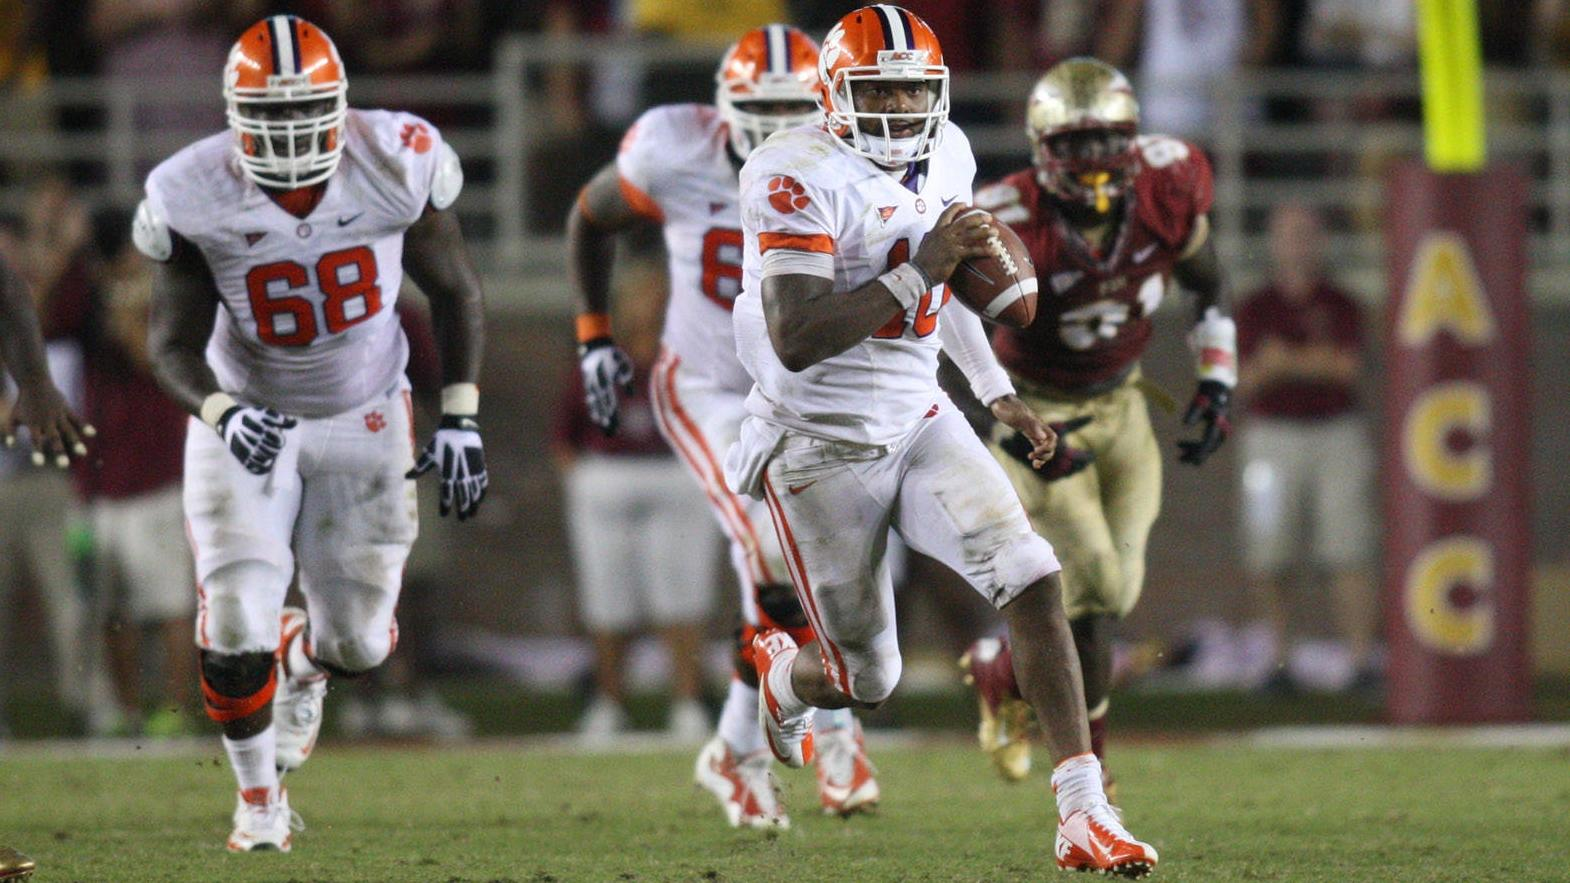 Exclusive: Boyd Rallies Tiger Troops Ahead of BC Game